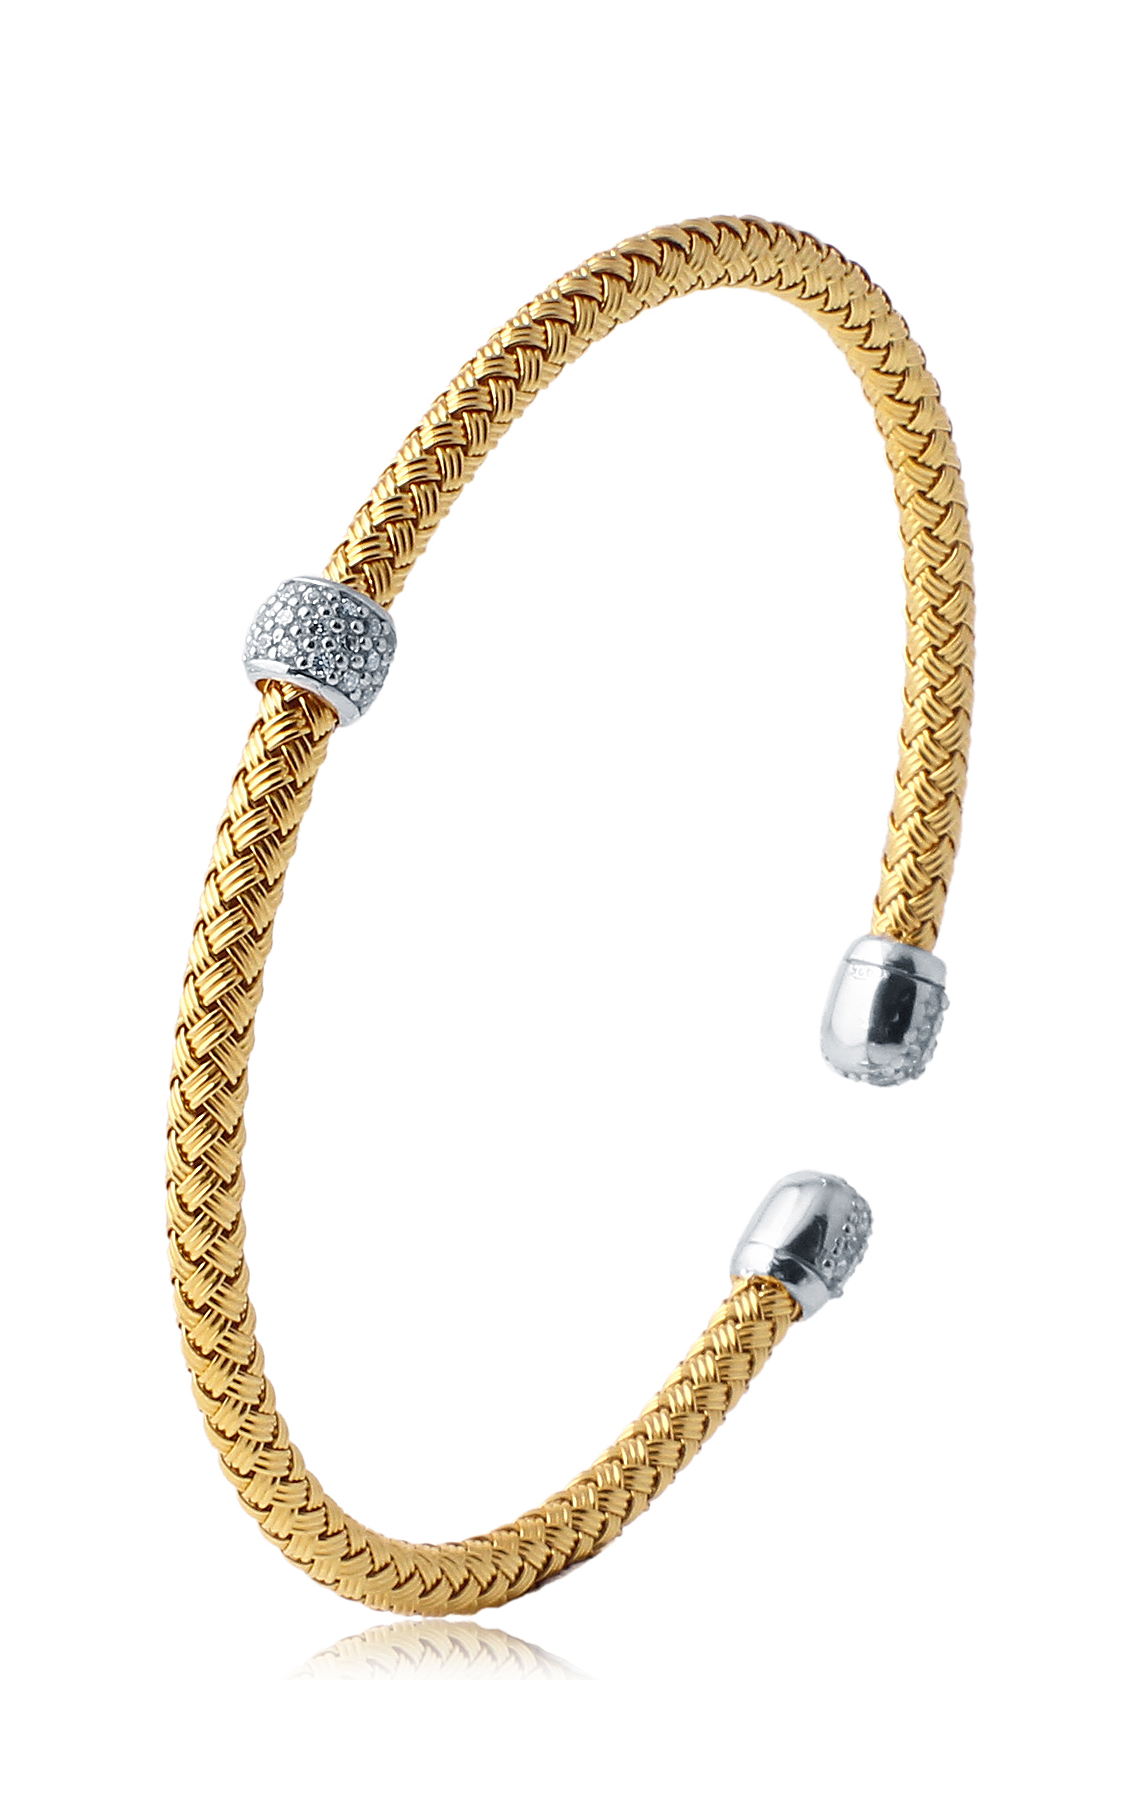 Charles Garnier Bracelets Bracelet Paolo Collection MLC8059YWZ product image